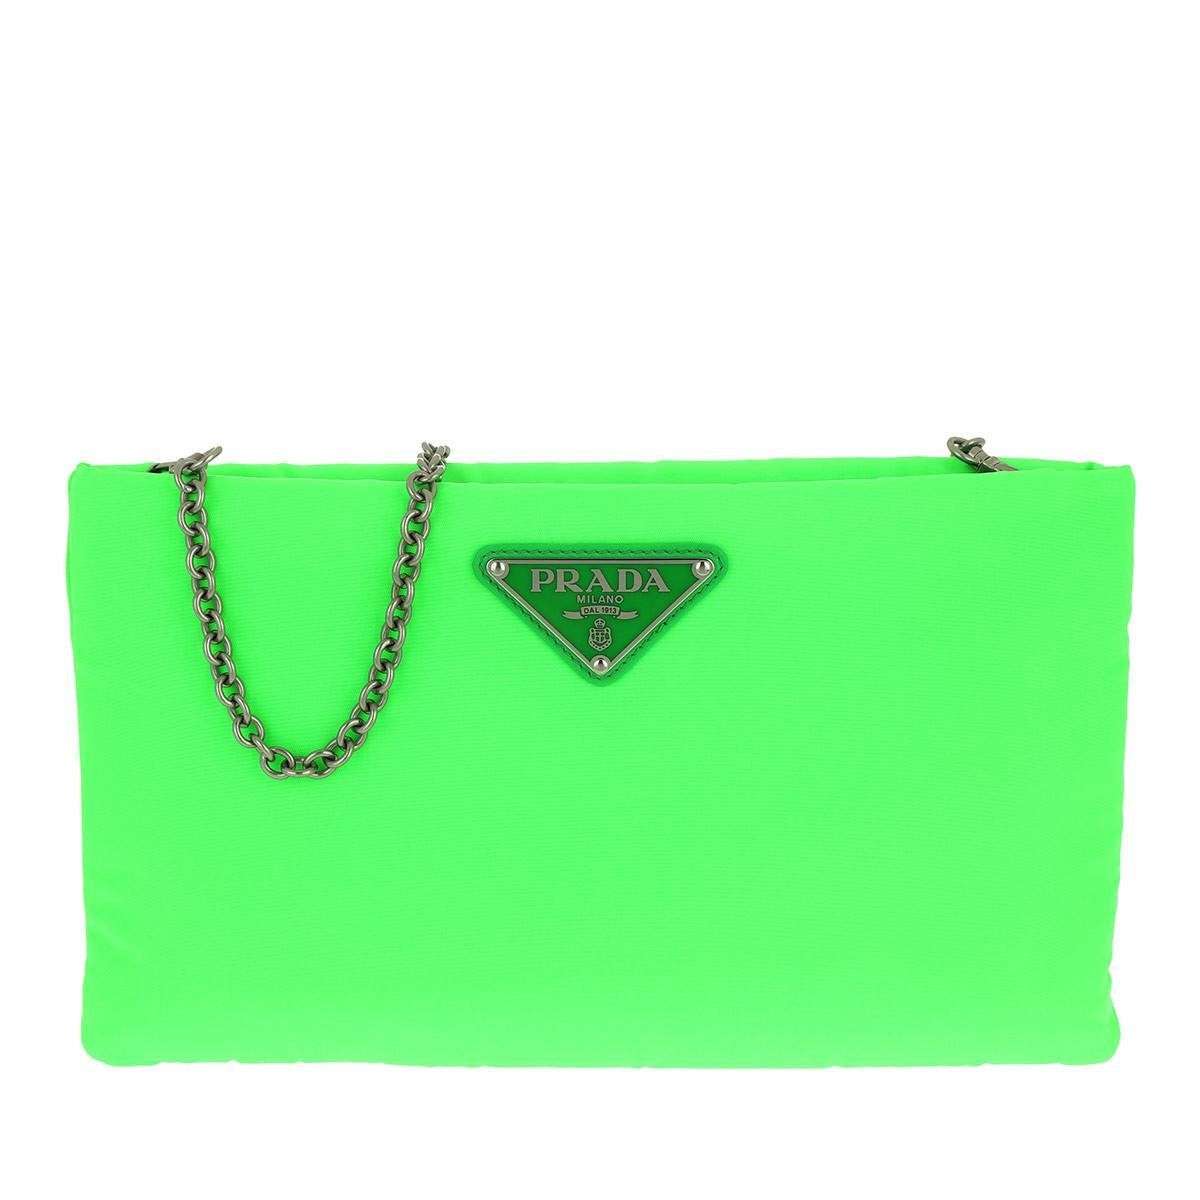 bc463dad6c33f2 Prada Clutch Padded Nylon 2 Neon Green in Green - Lyst